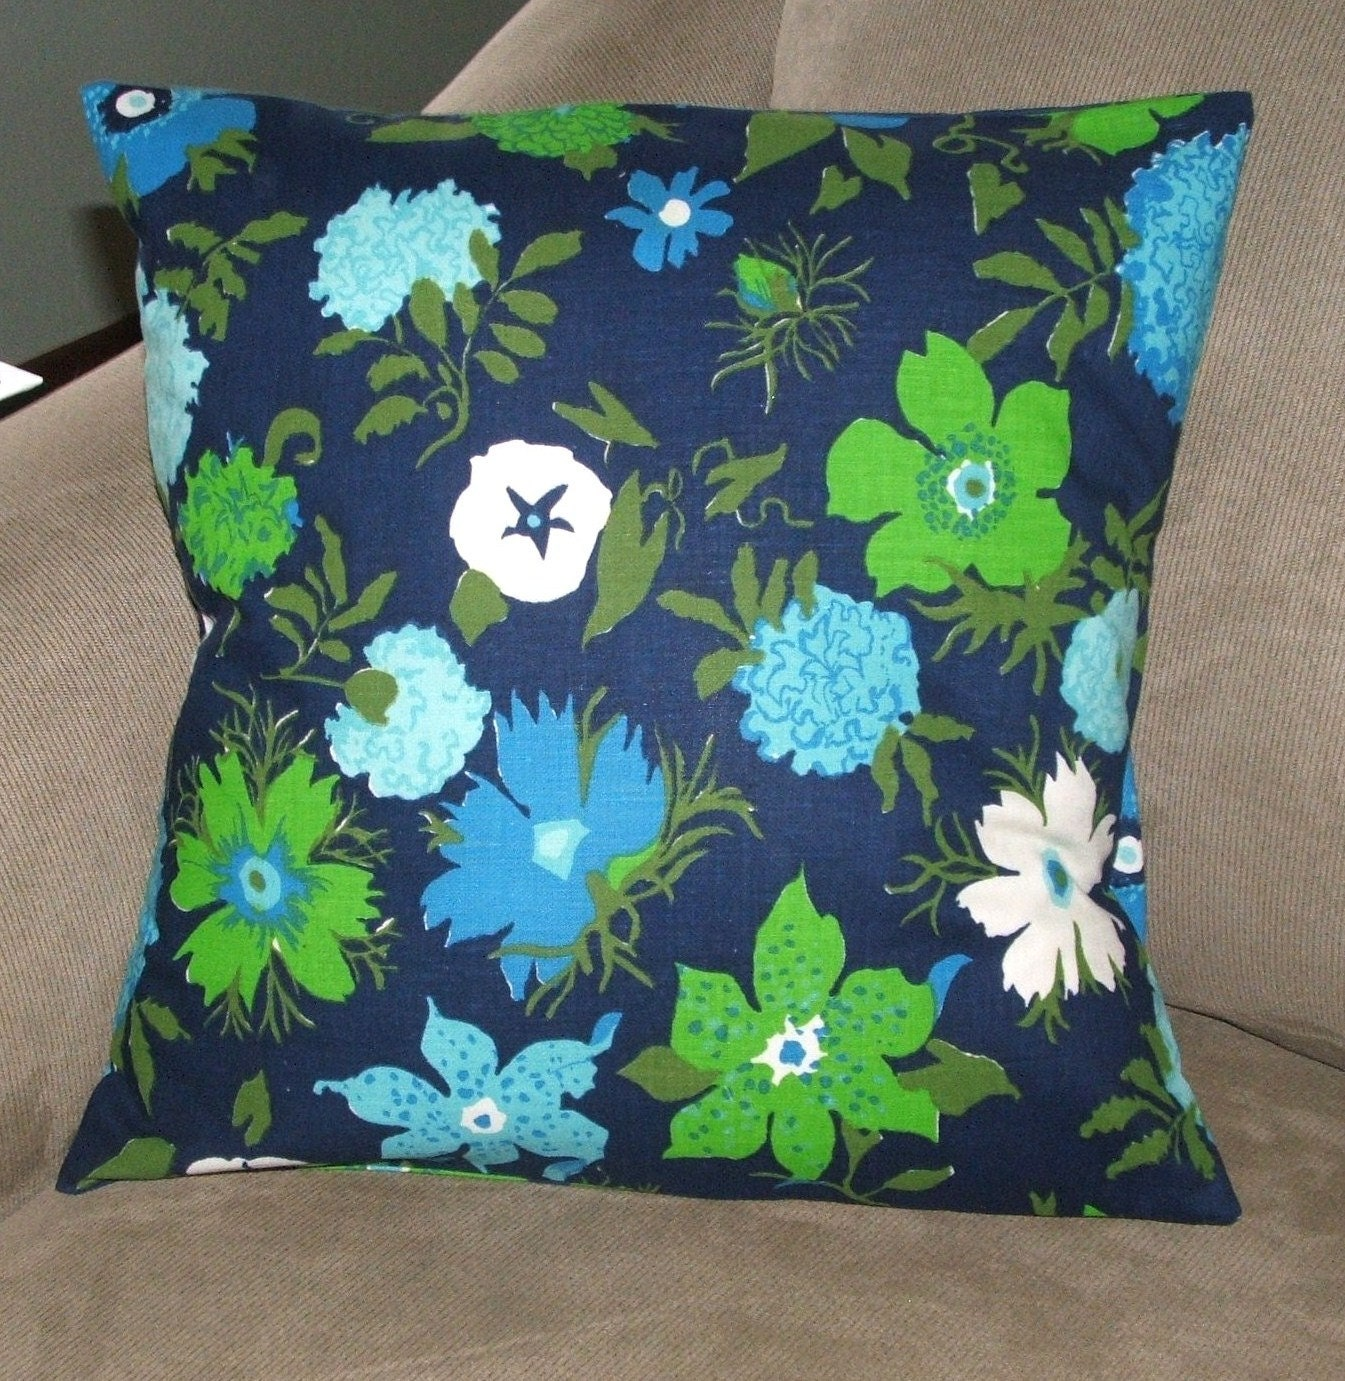 Pillow Cover, Navy, Blue and Green Print, Decorative Pillow Cover, Throw Pillow Cover, 16 X 16 ...